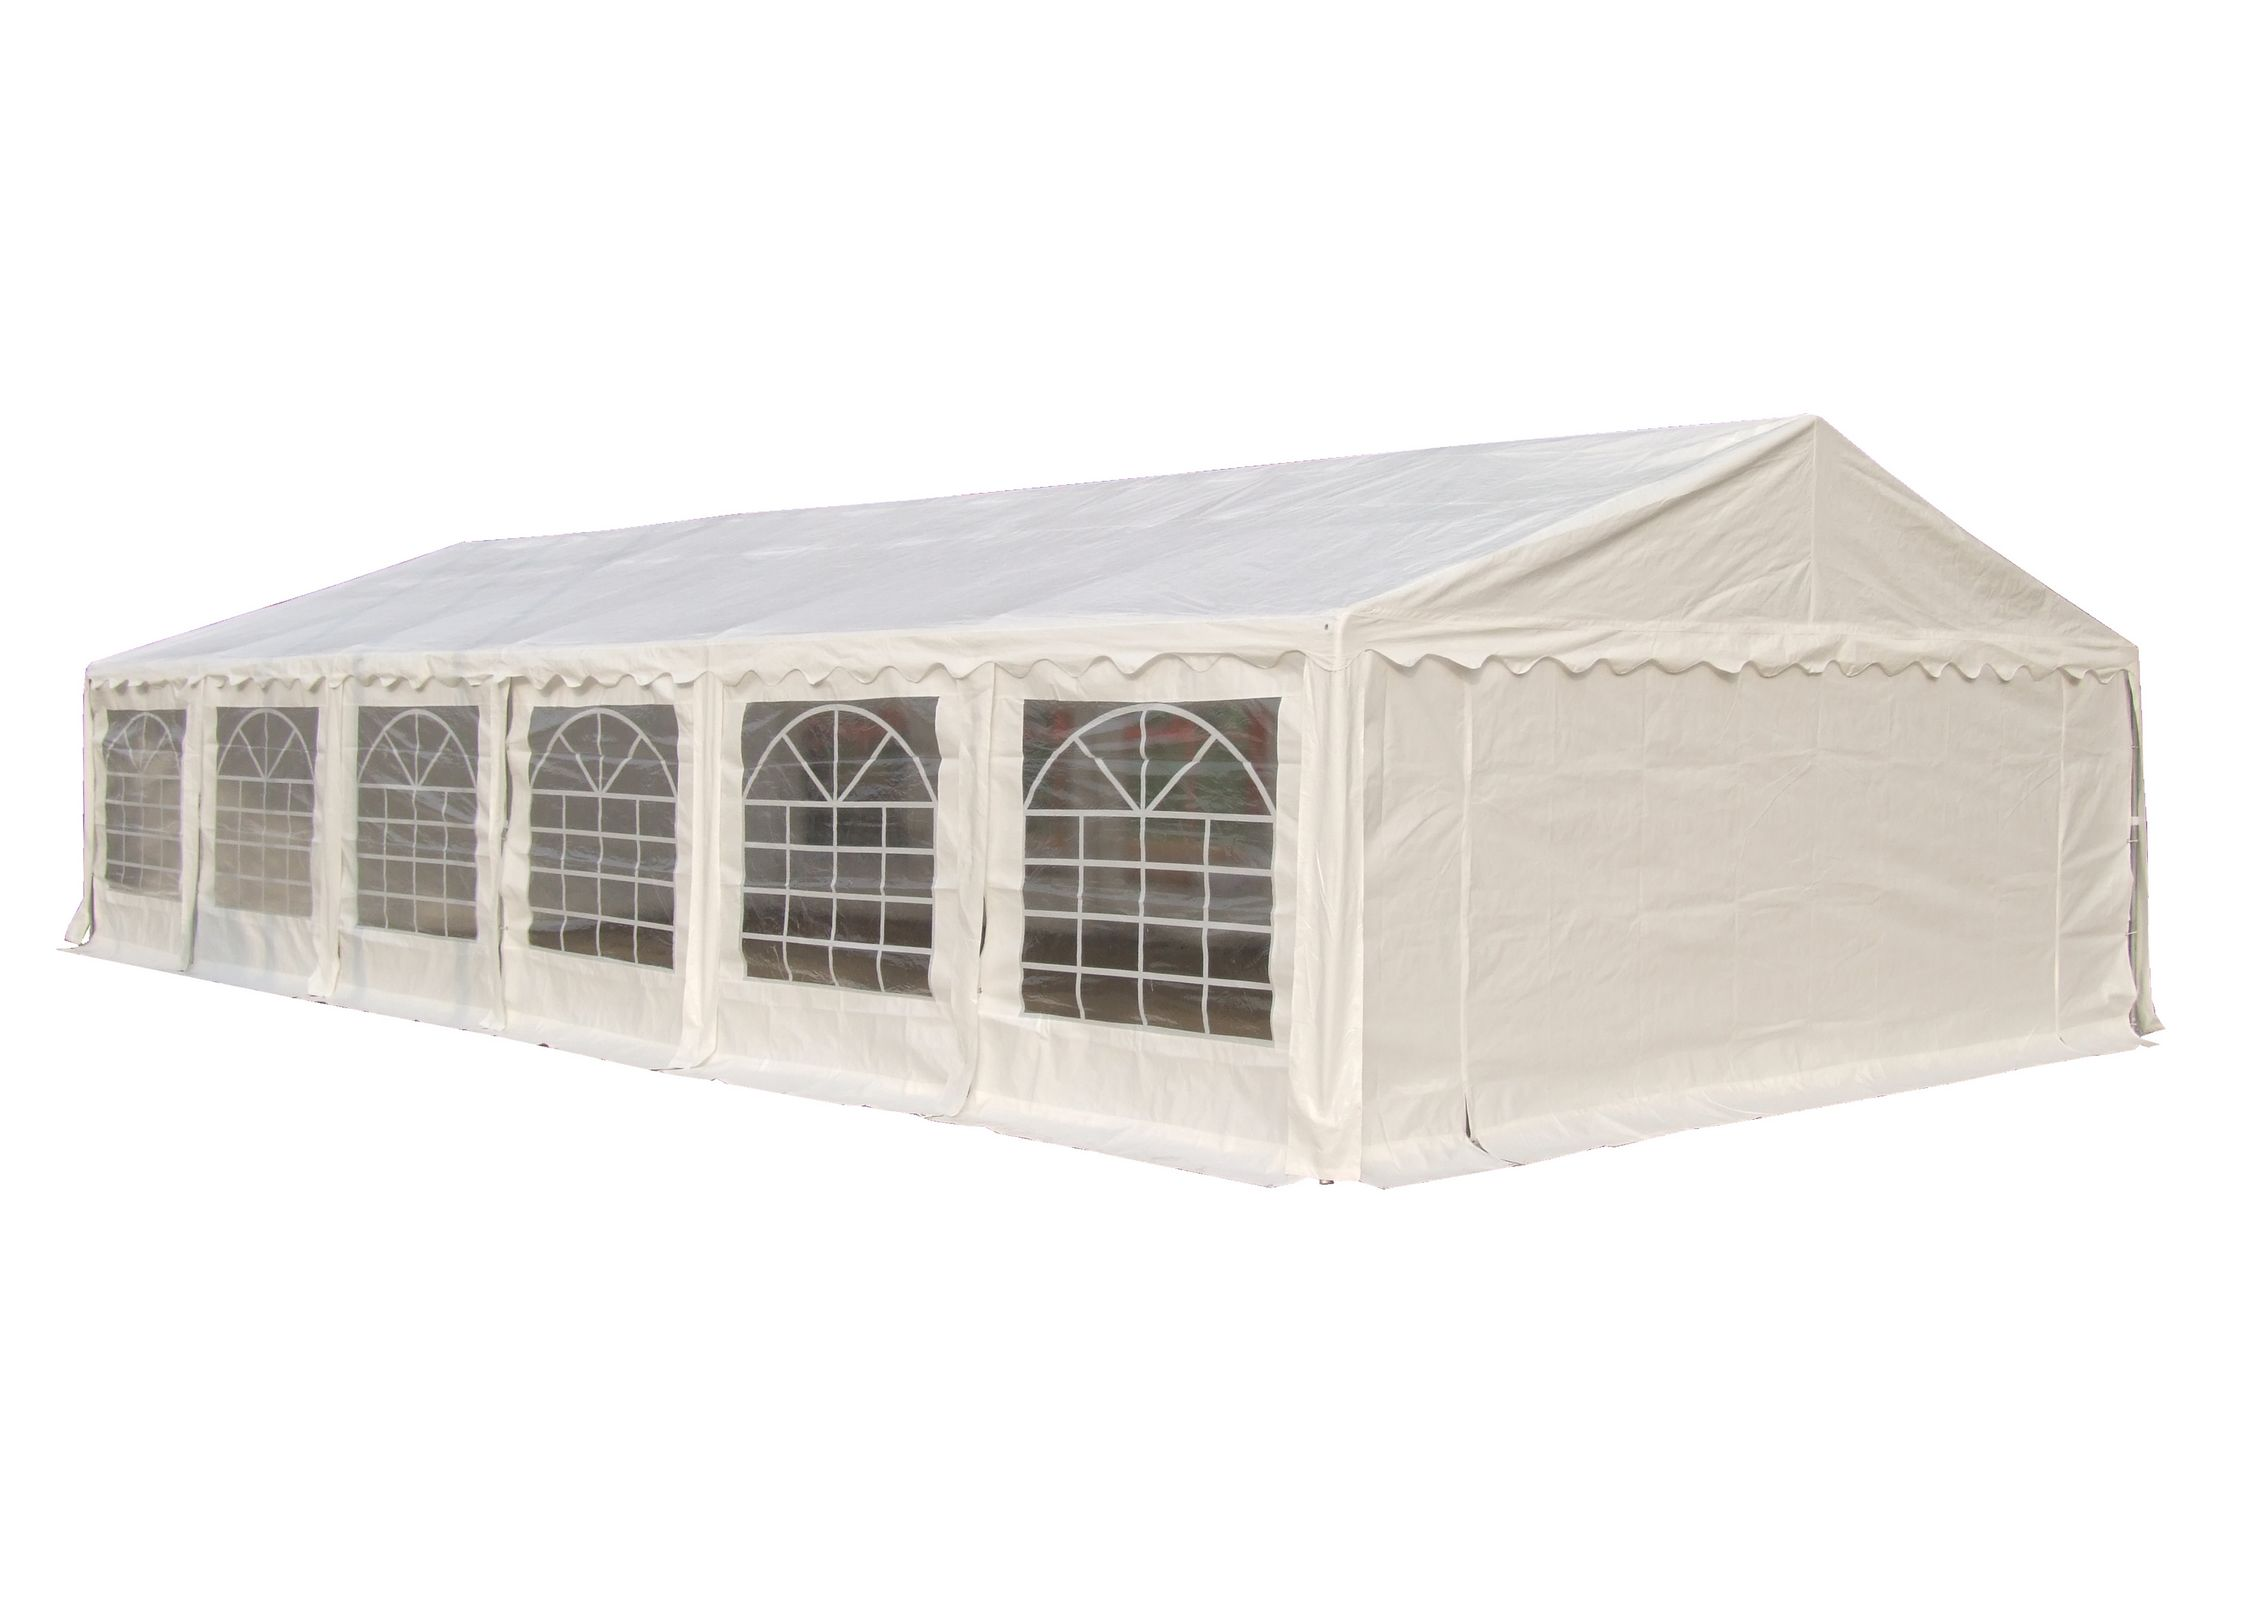 Sentinel 6 x 12m Waterproof PE Marquee 6m x 12m Heavy Duty Wedding Gazebo Garden Tent  sc 1 st  eBay & 6 x 12m Waterproof PE Marquee 6m x 12m Heavy Duty Wedding Gazebo ...